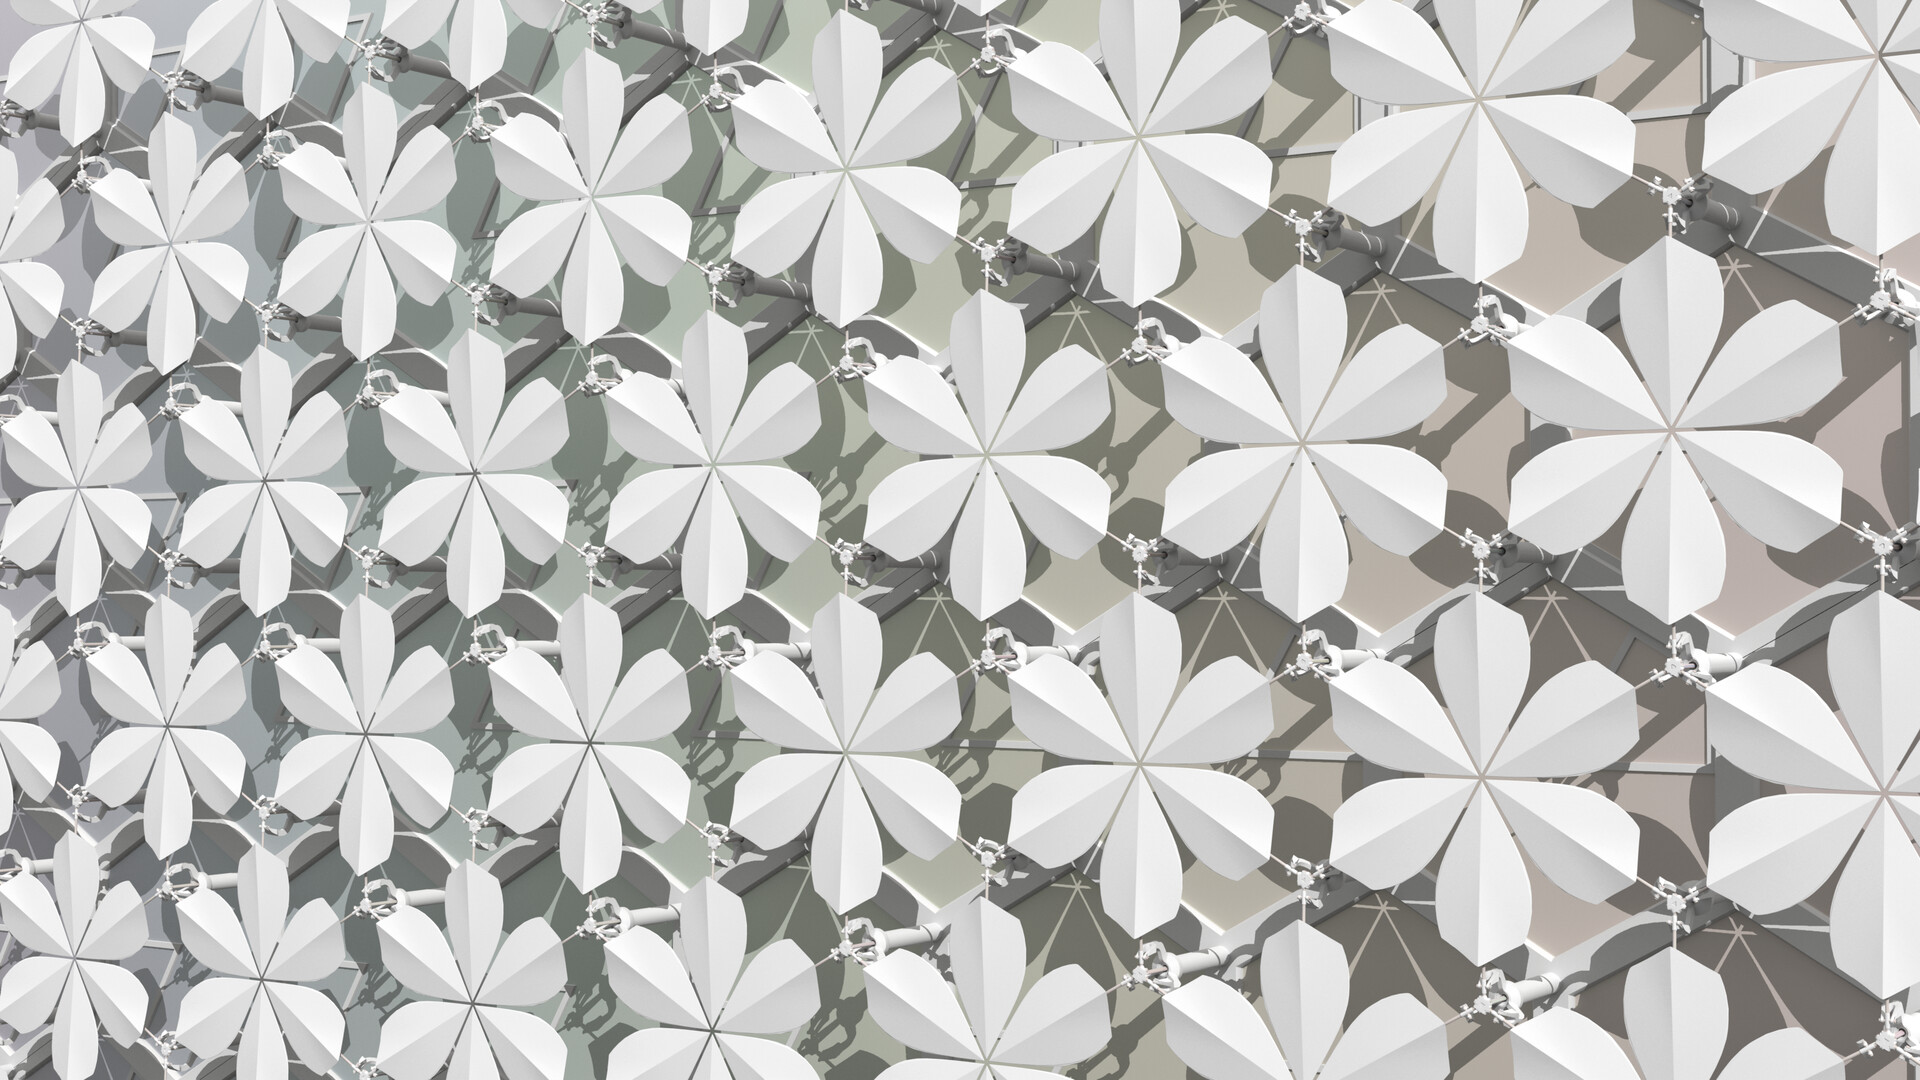 Flower scales 60º alignment: full shading over hexagonal static façade; on discovering that to avoid interference I needed to trim the back edges, I decided to consciously invoke biomorphic influences for both fit and æsthetics - I love this result.